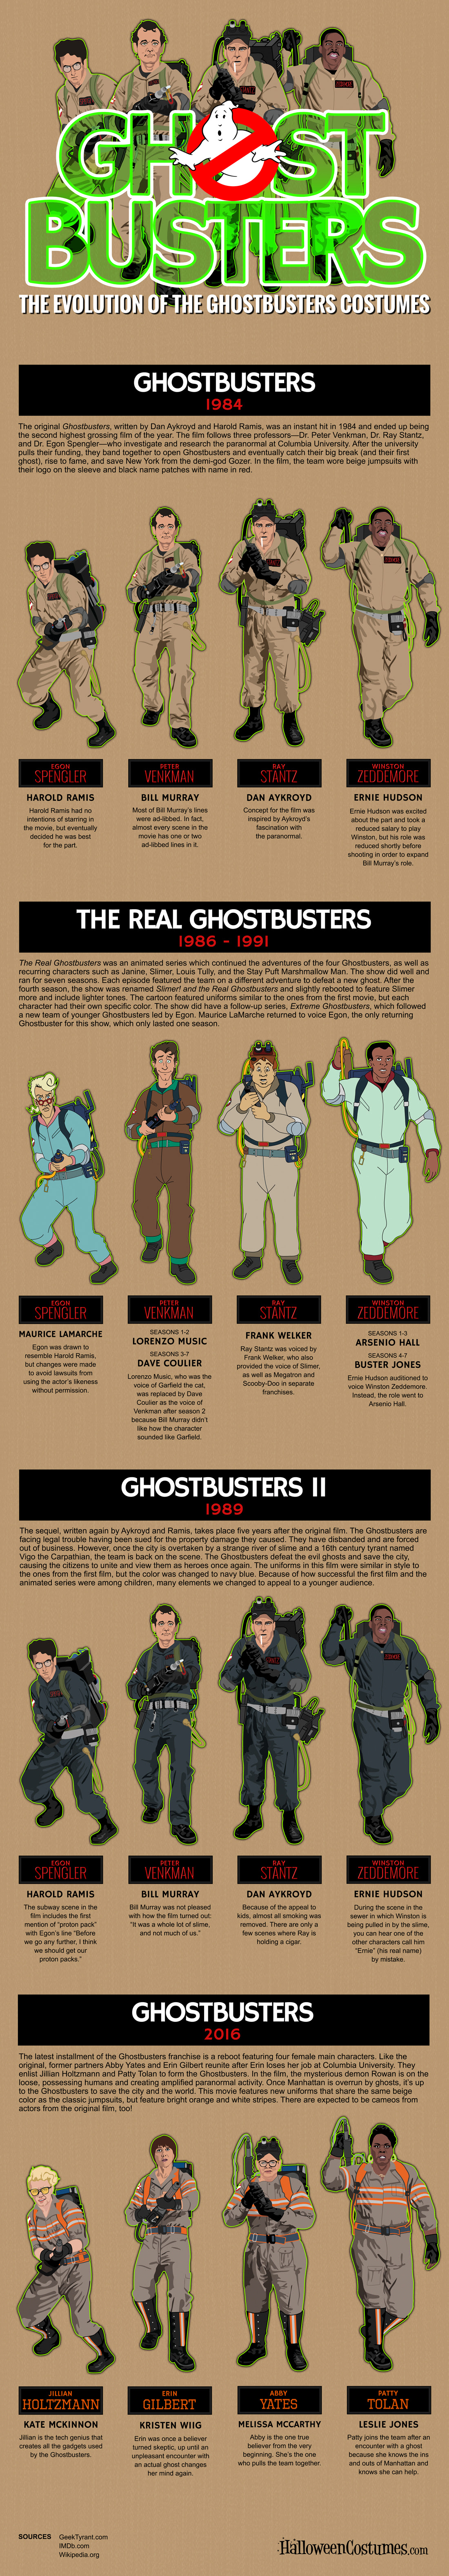 The Evolution of the Ghostbusters Costumes